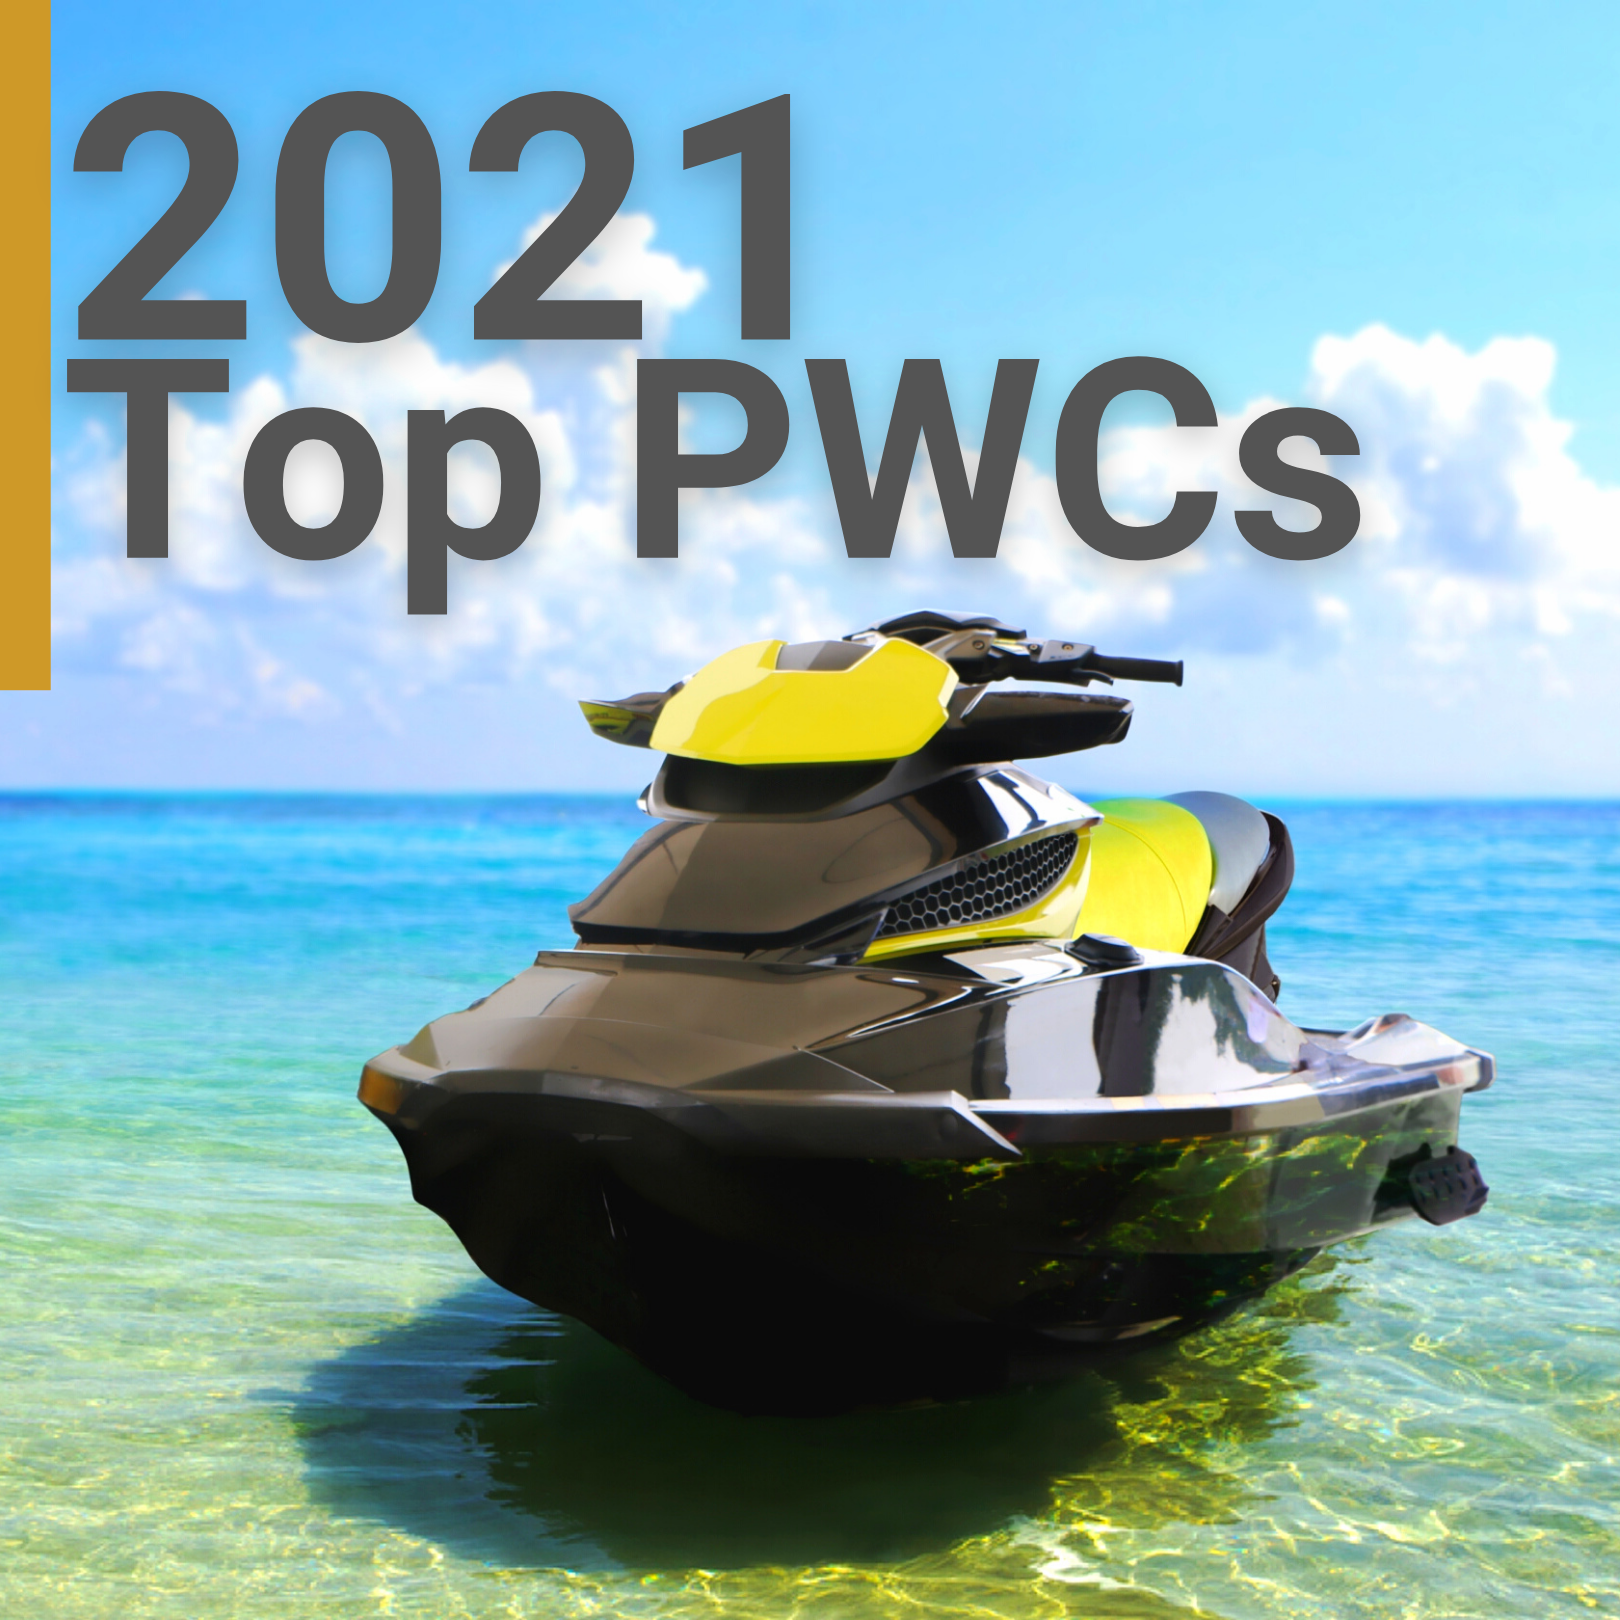 View our favorite jet skis and PWCs of 2021